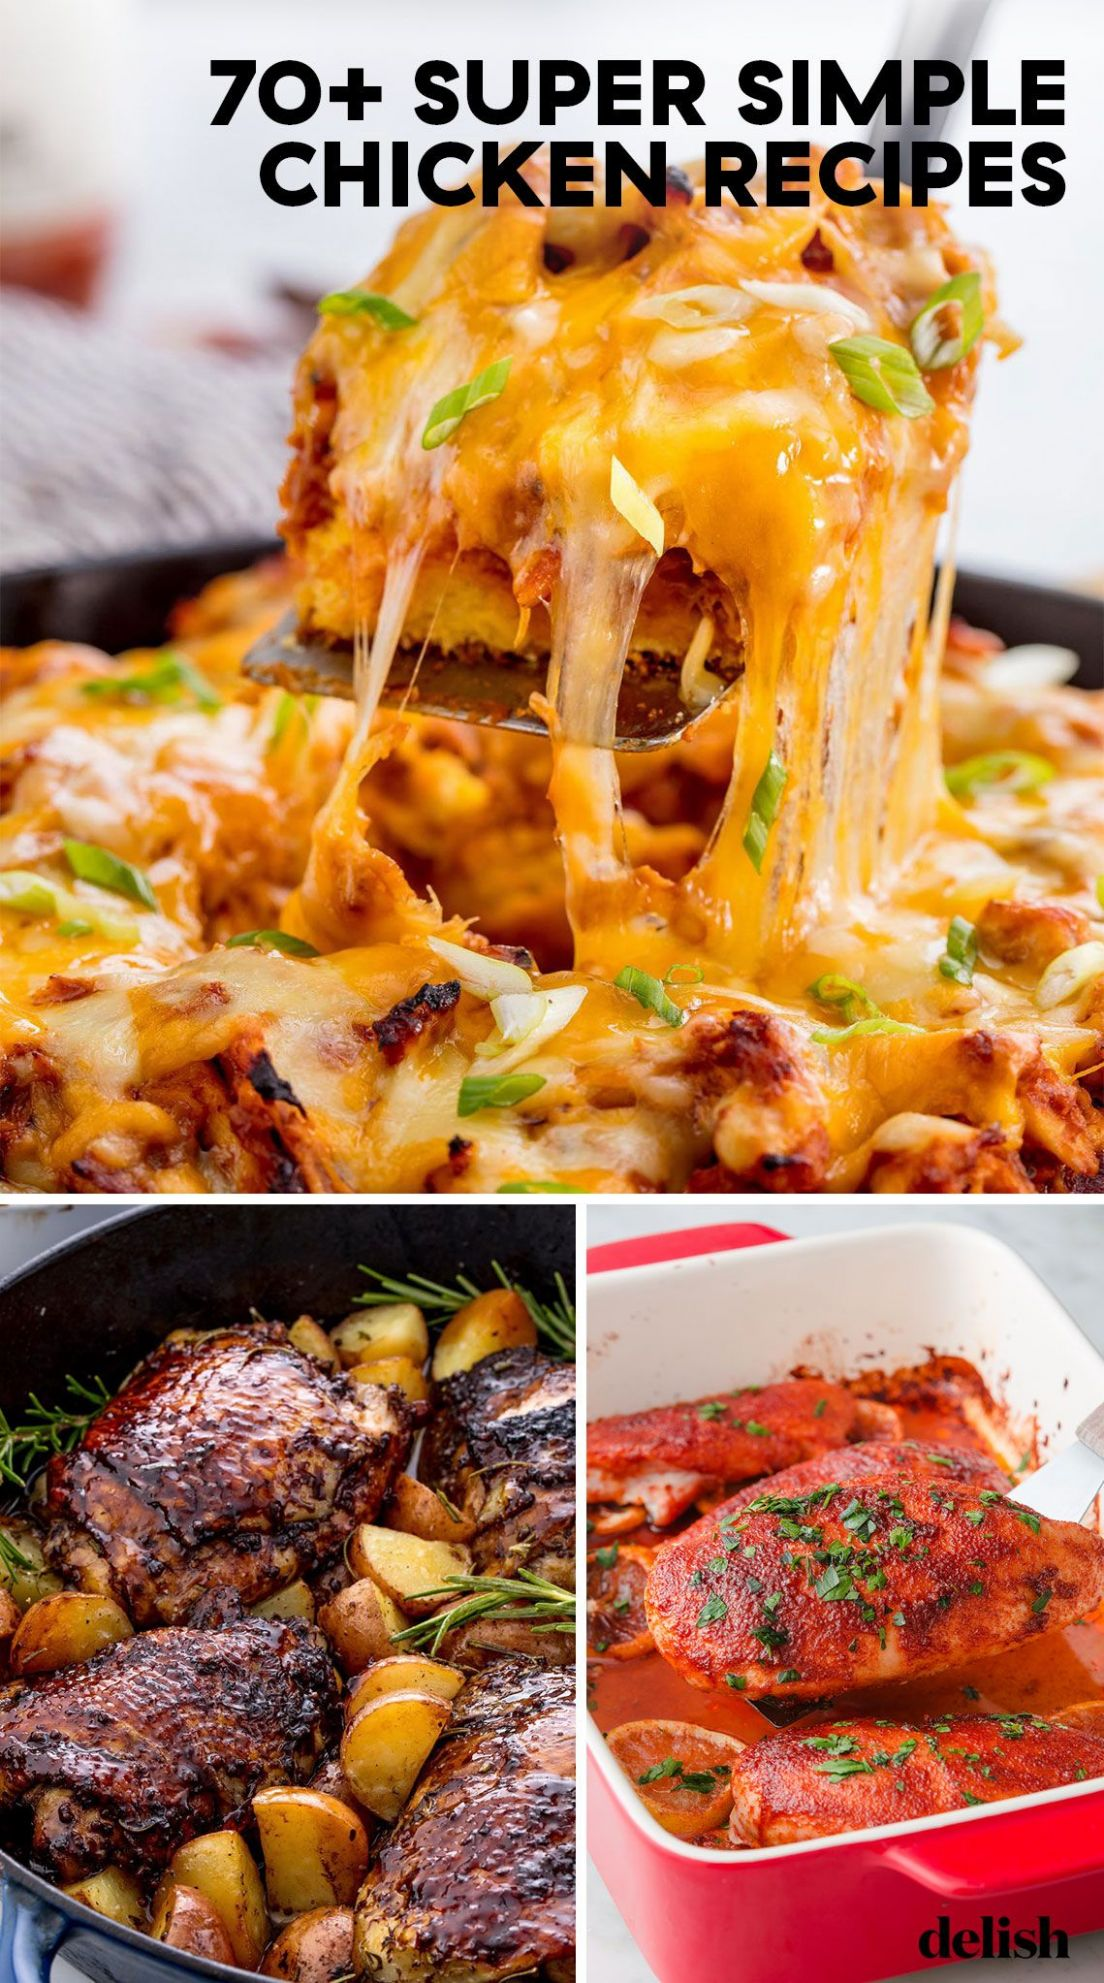 12+ Easy Chicken Dinner Recipes - Simple Ideas for Chicken Dishes - Recipes Chicken Easy